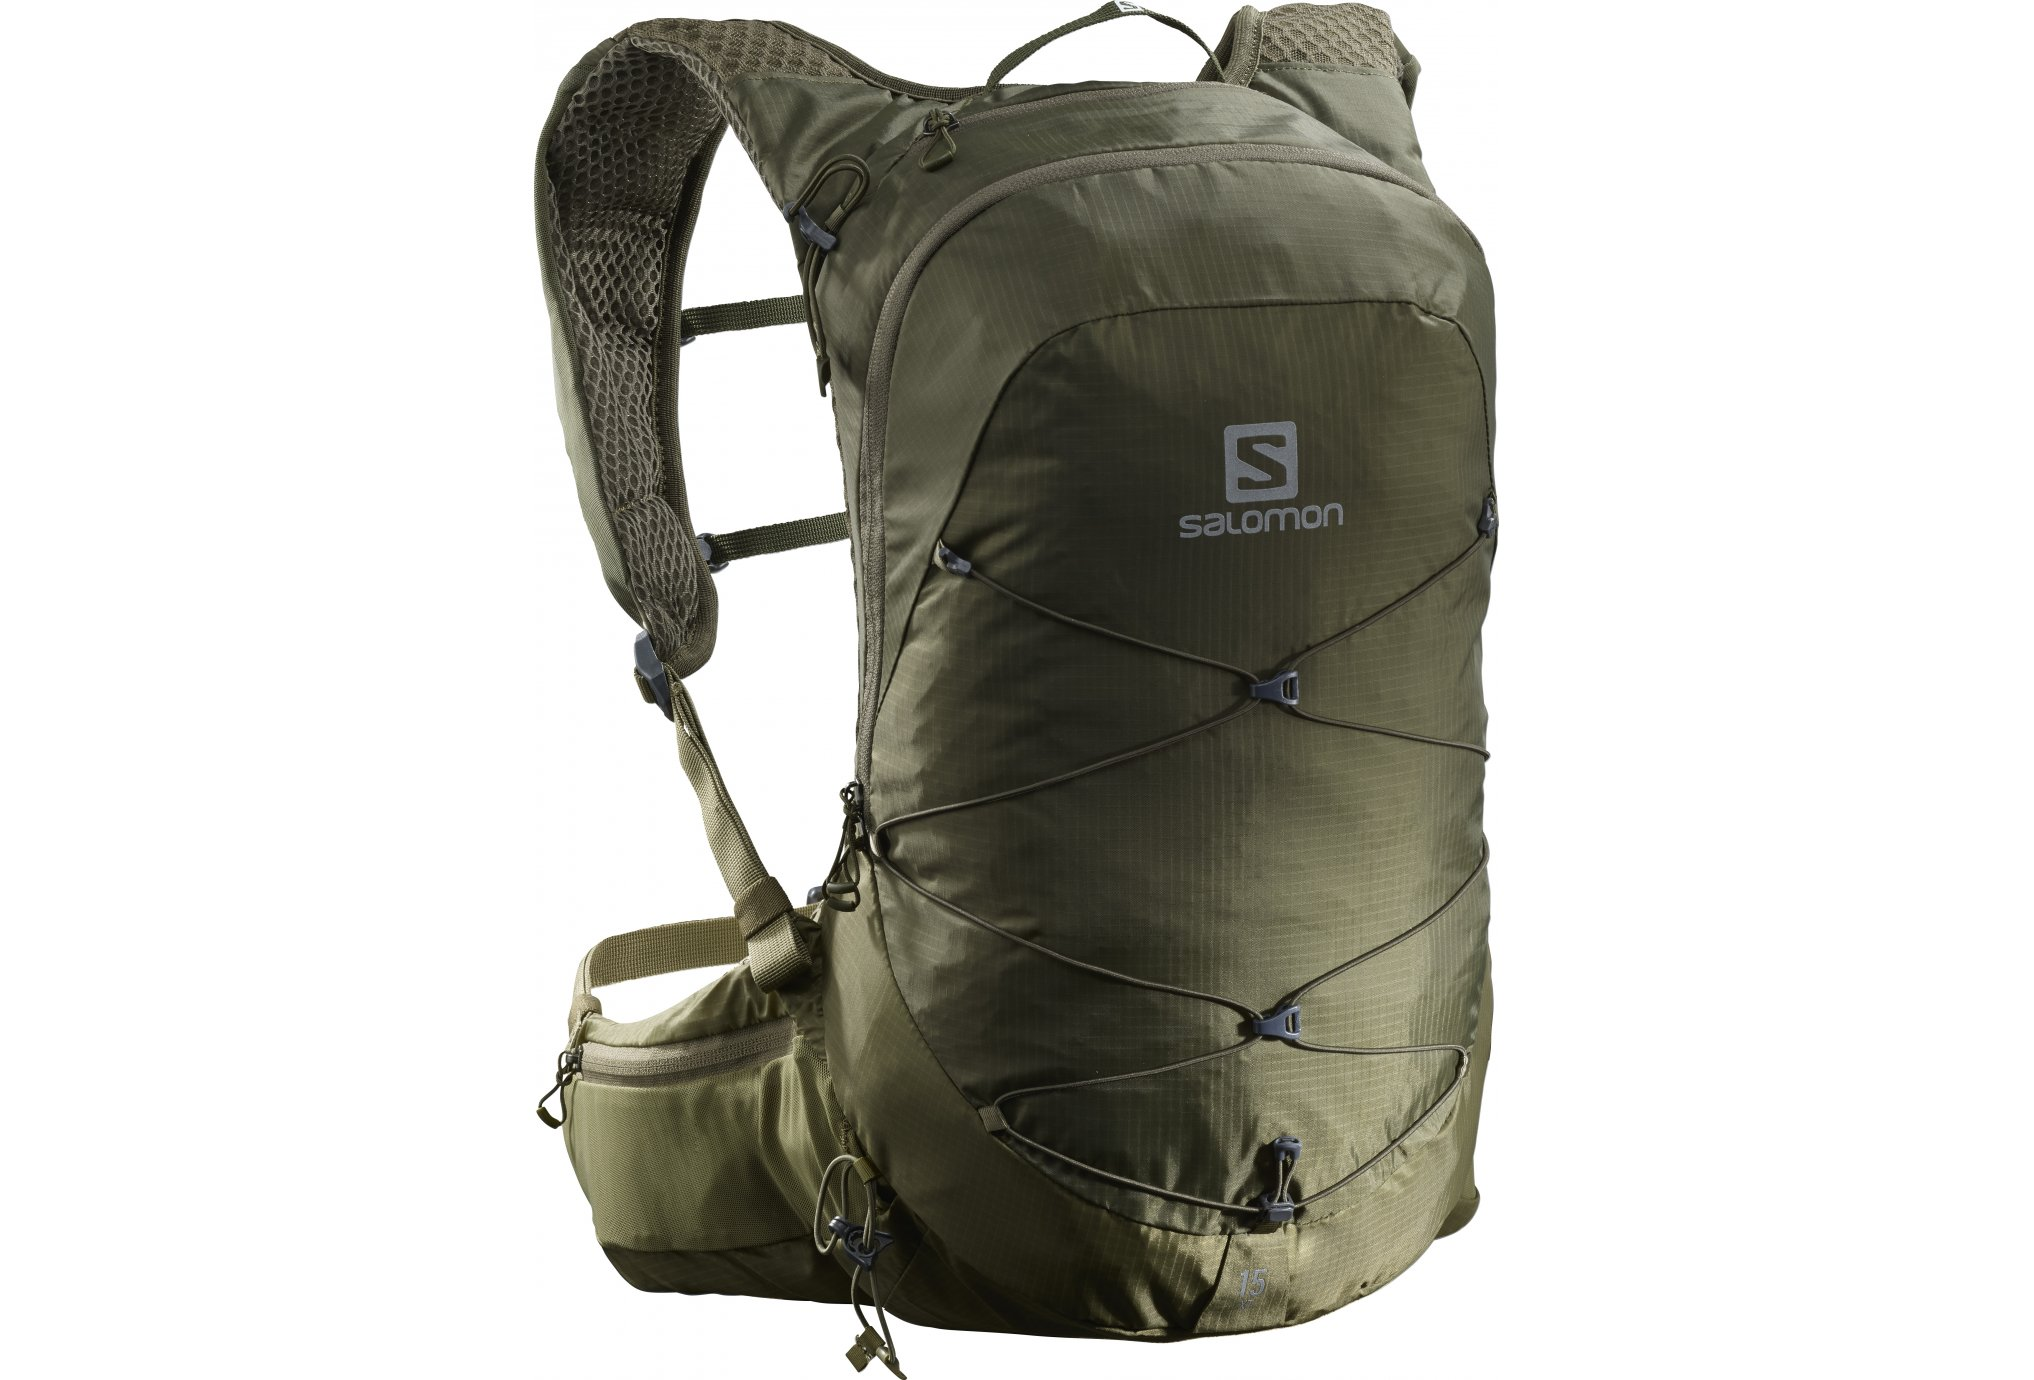 Salomon XT 15 Sac à dos